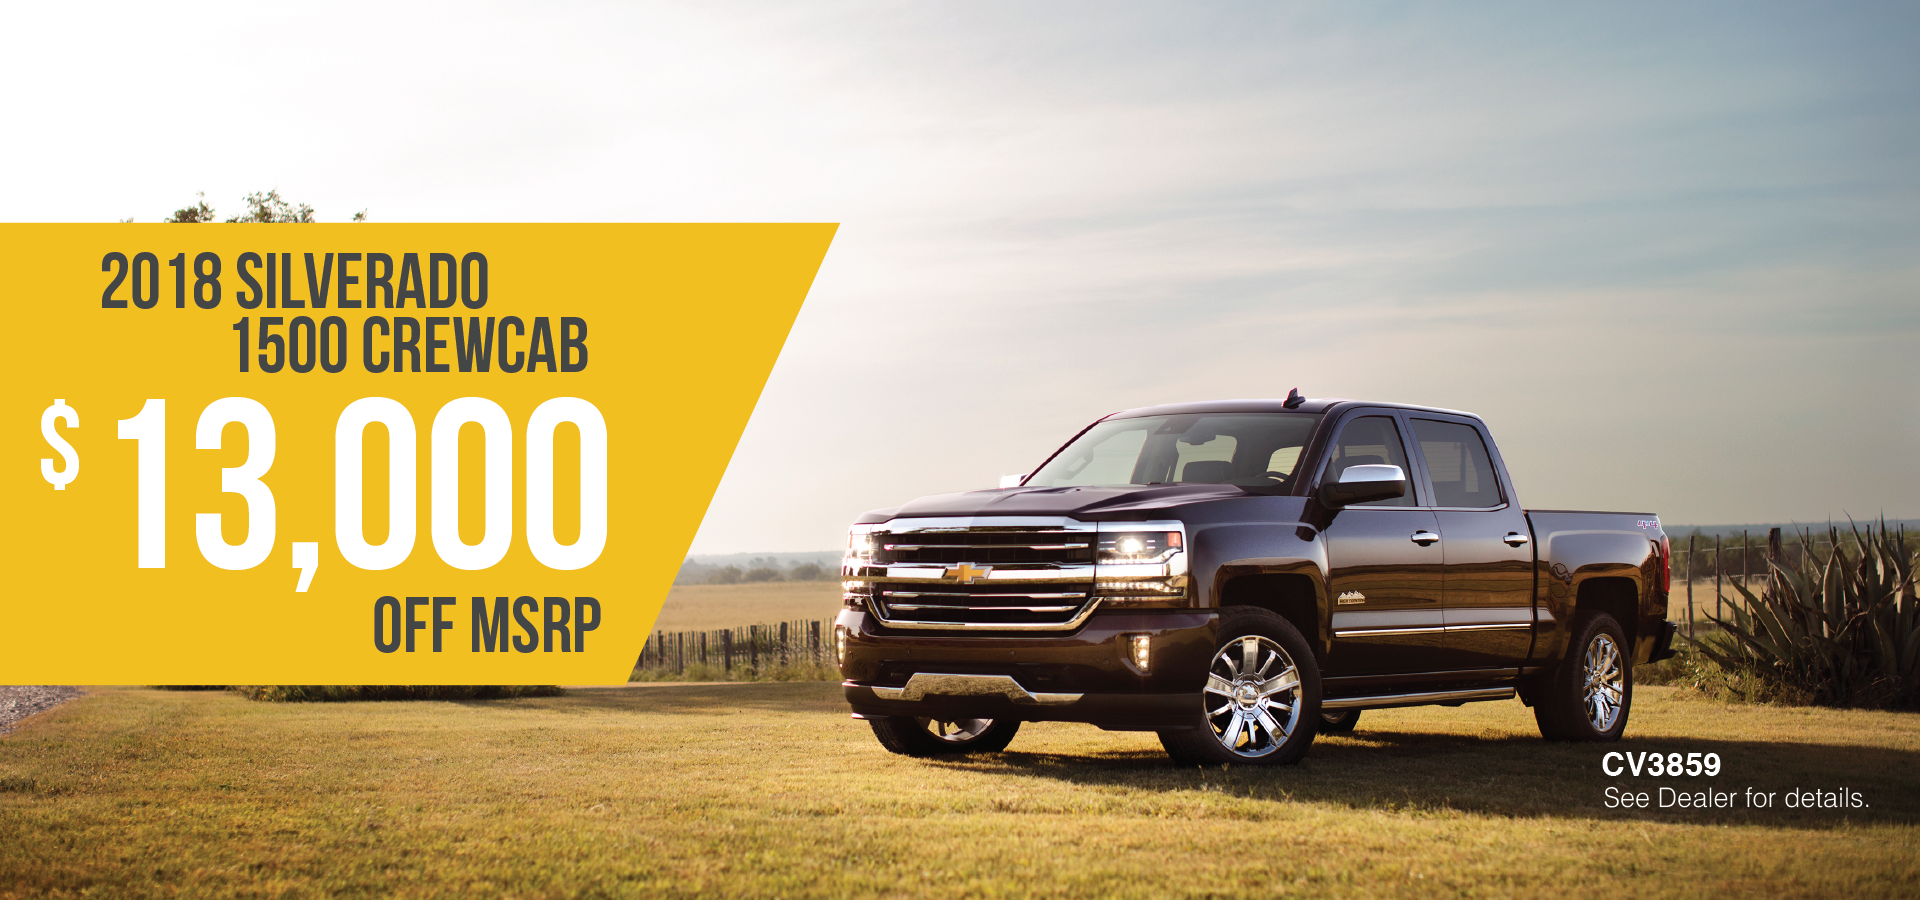 2018 Silverado 1500 Crew Cab - Save $13,000 CV3859 - See dealer for details